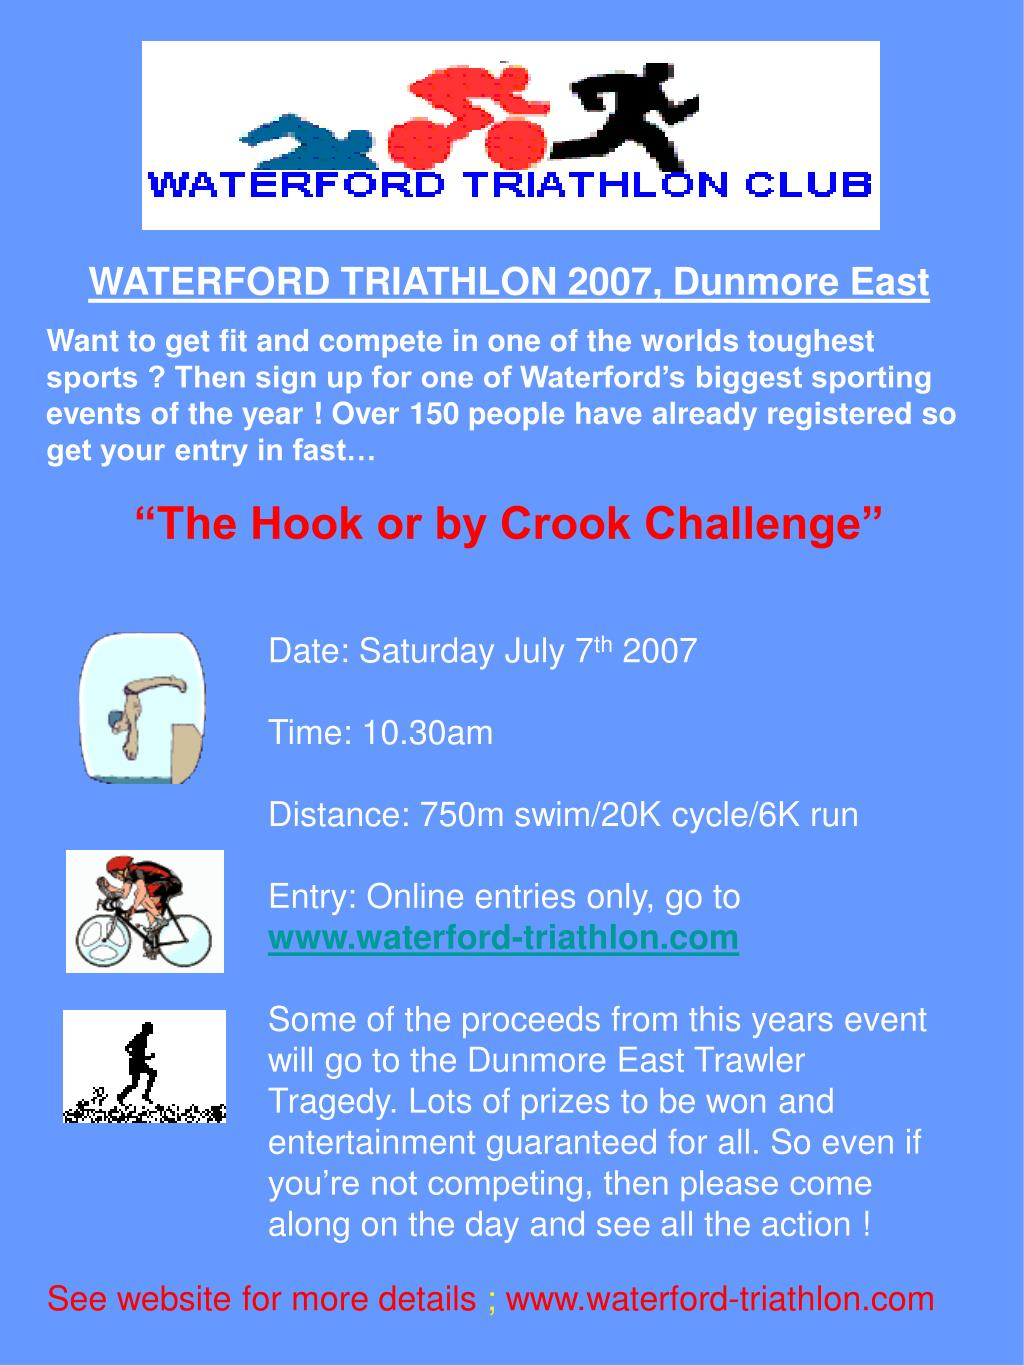 WATERFORD TRIATHLON 2007, Dunmore East